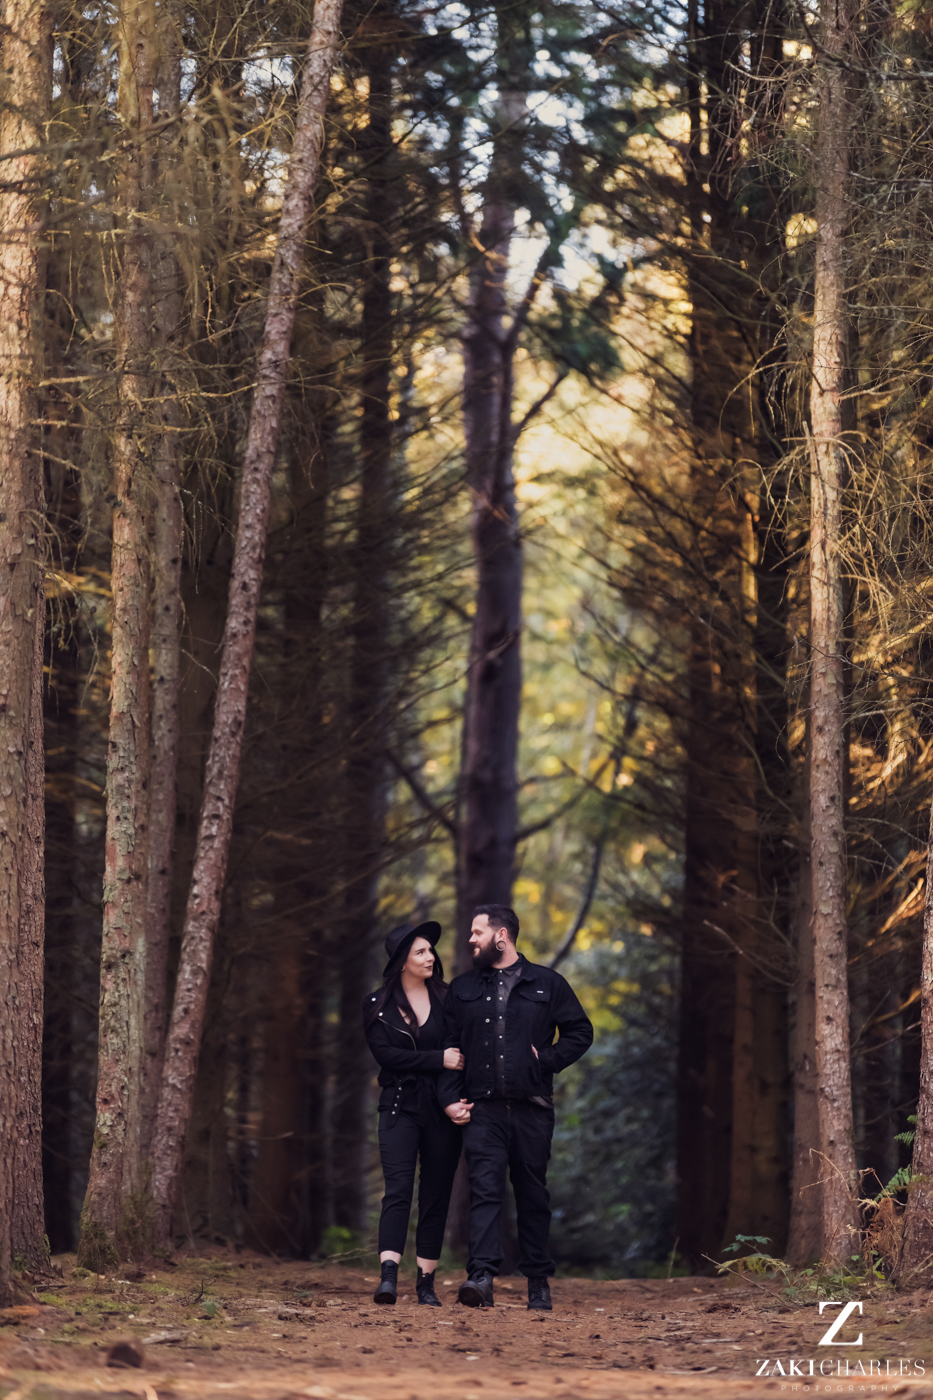 Black Park Engagement Session, Kirsty & Alex holding hands 2